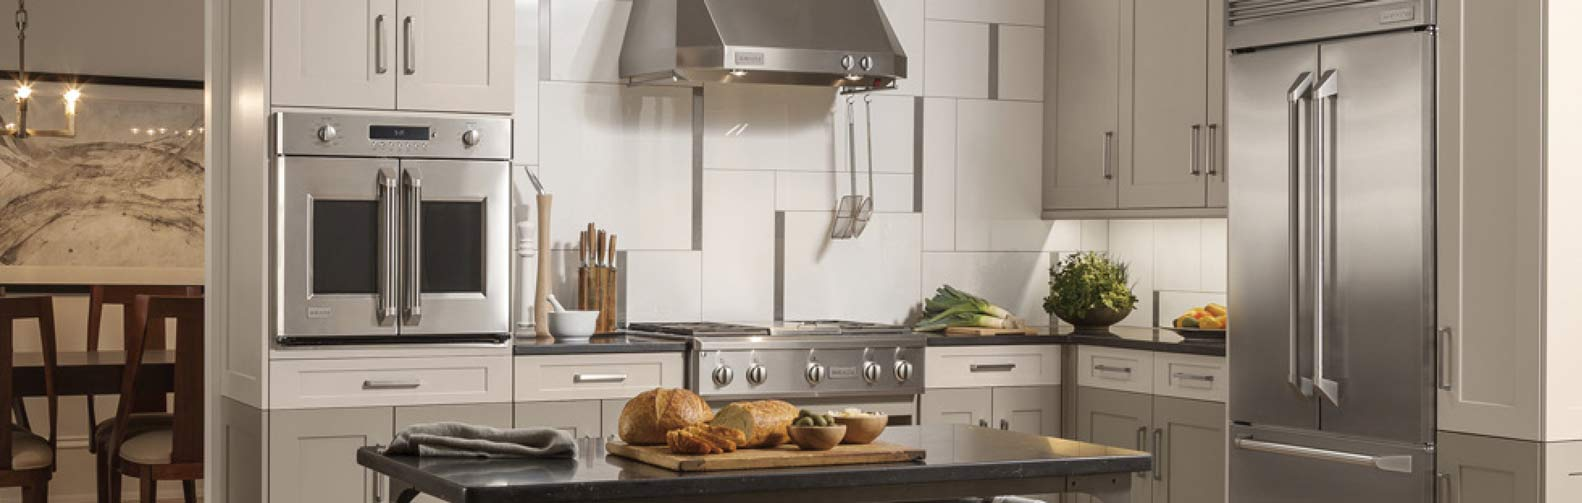 bray and scarff kitchen appliances